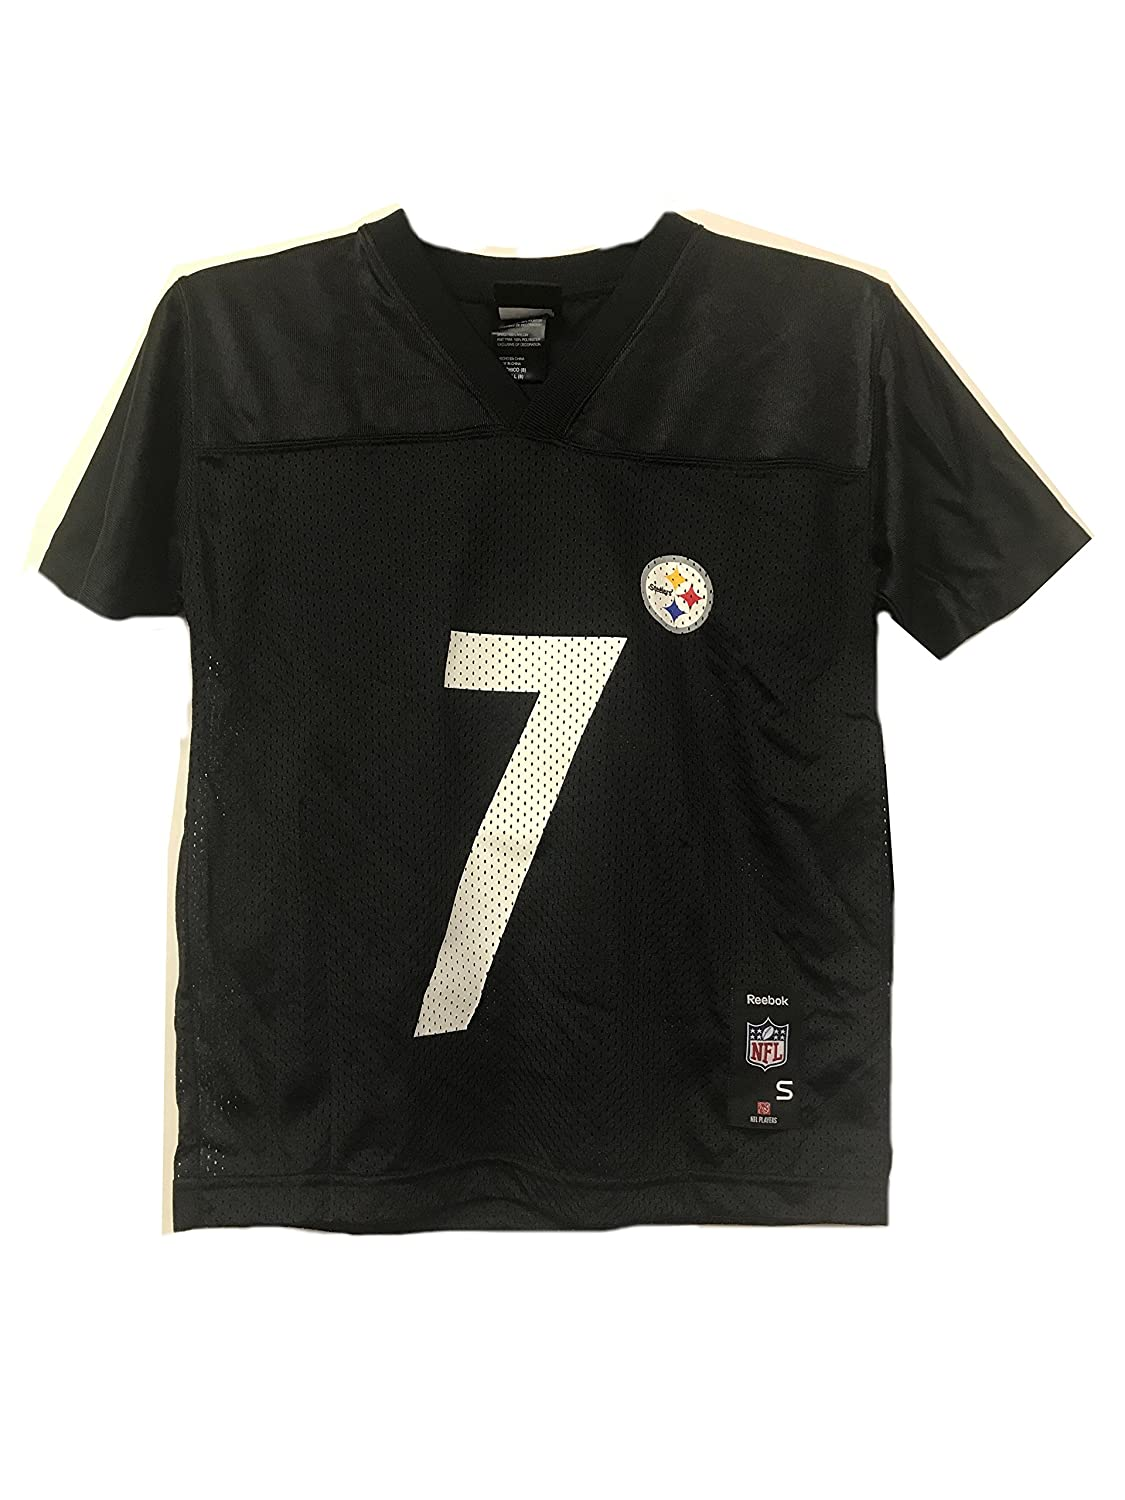 f69a71bcc Amazon.com  Ben Roethlisberger Pittsburgh Steelers NFL Youth Black Home Mid- Tier Mesh Jersey  Clothing